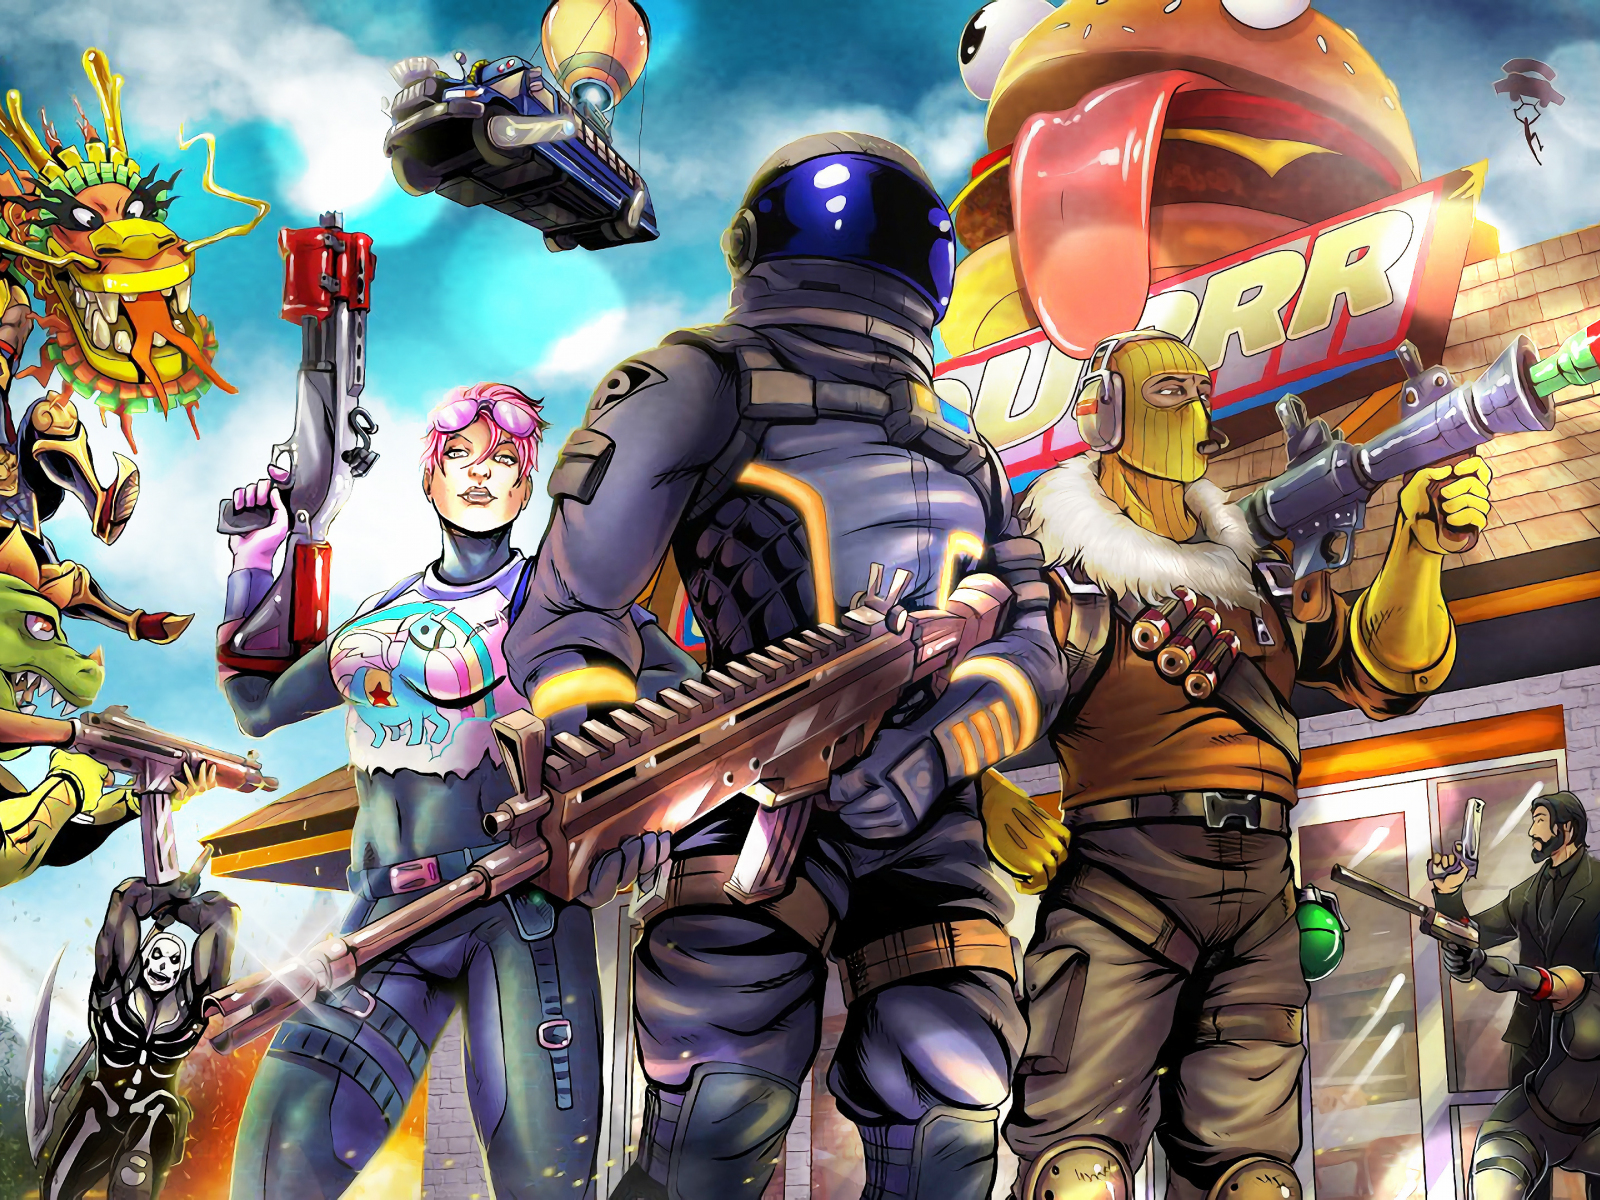 Desktop Wallpaper 2018 Video Game Fortnite Art Hd: Download 1600x1200 Wallpaper 2018, Video Game, Fortnite